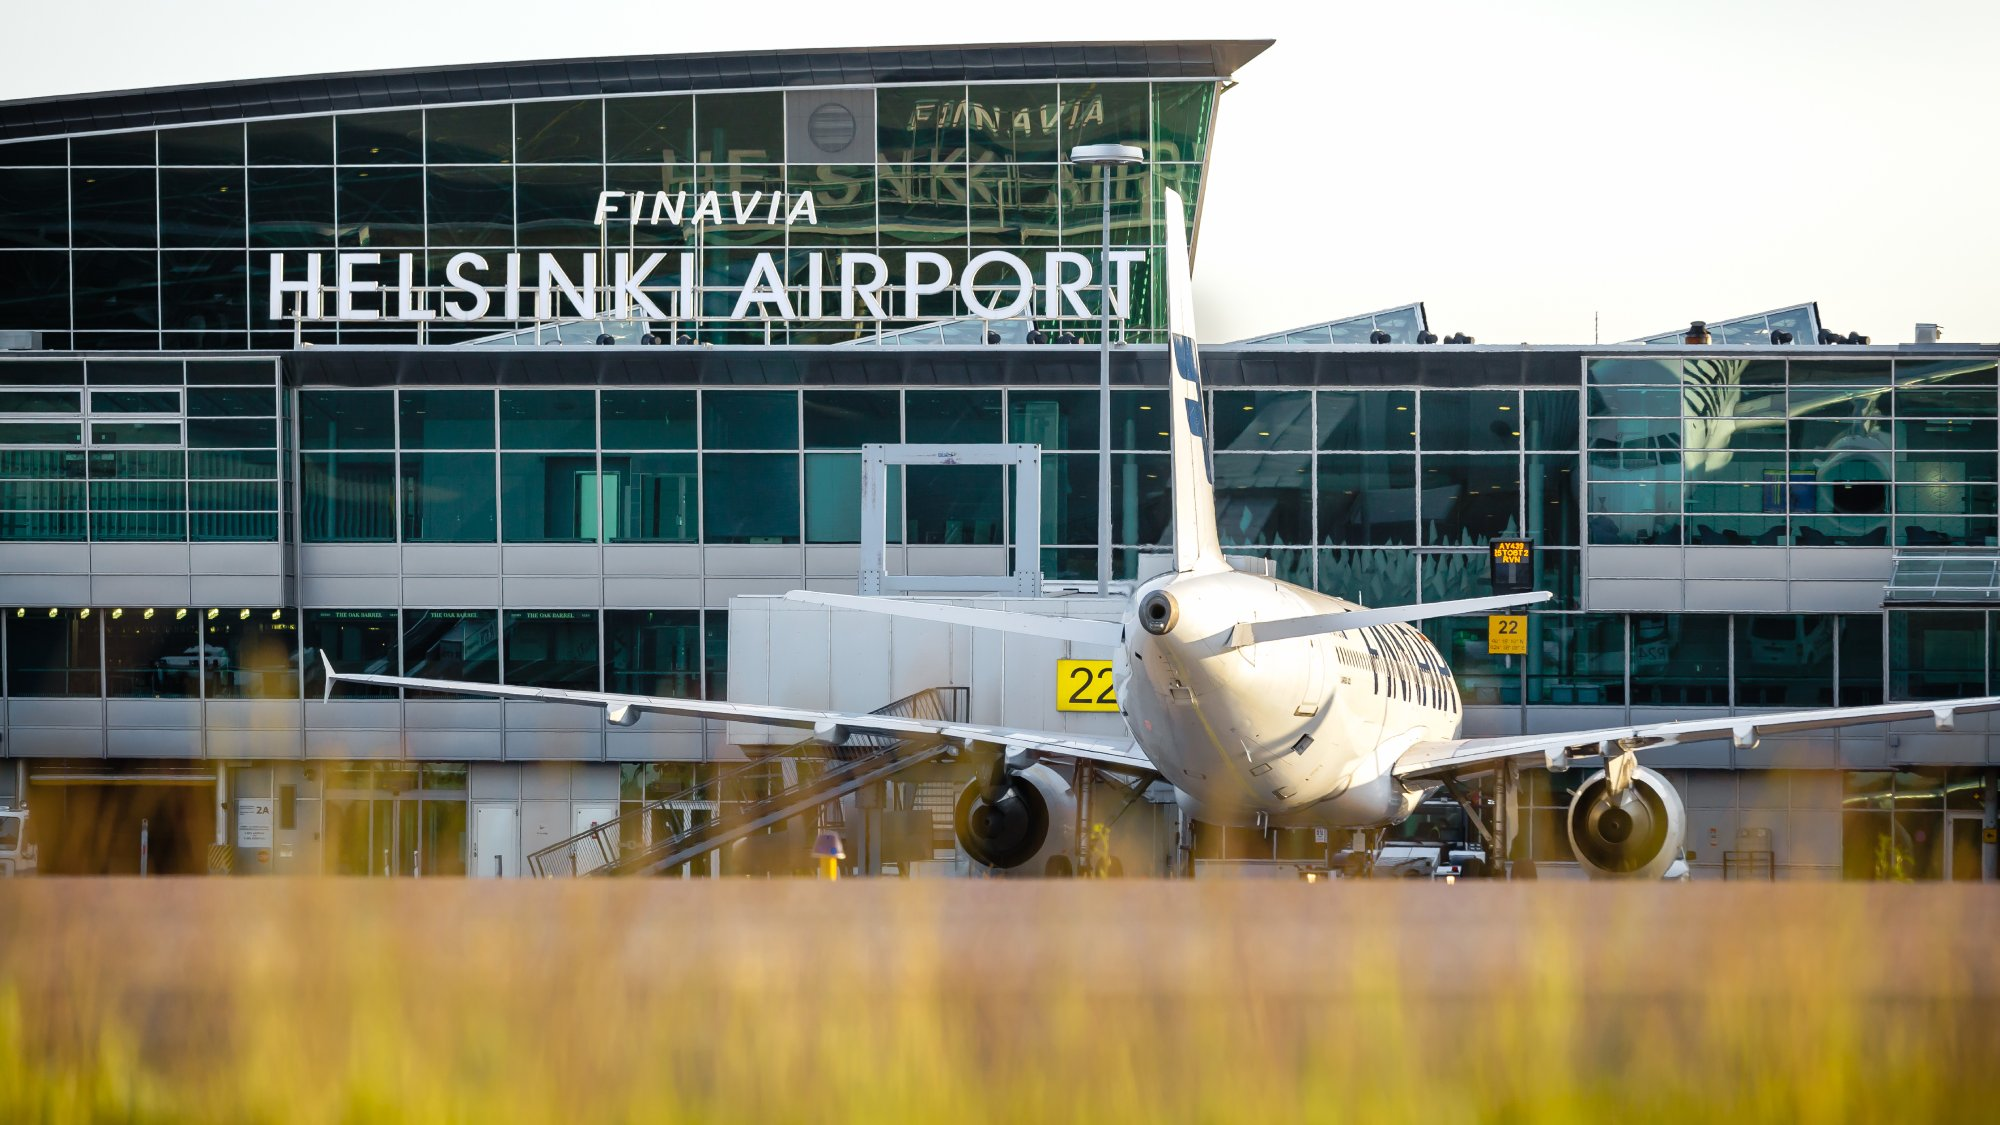 Helsinki Airport terminal and the air traffic control tower